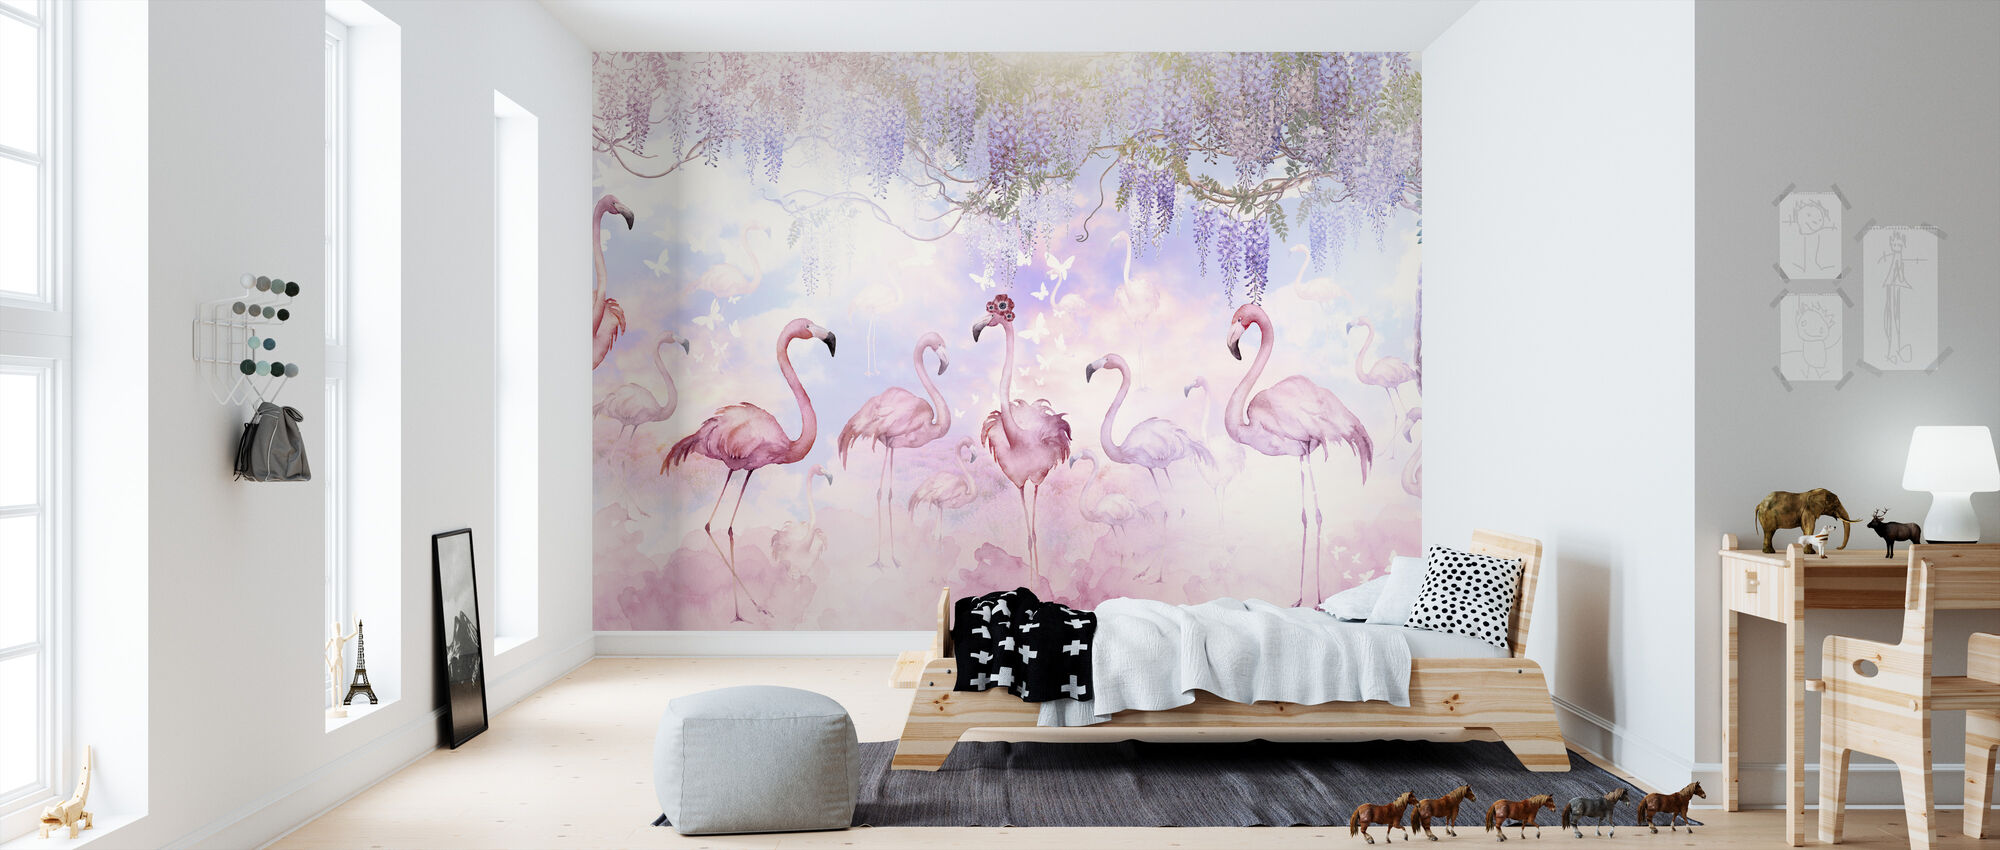 Flamingo Heaven - Wallpaper - Kids Room